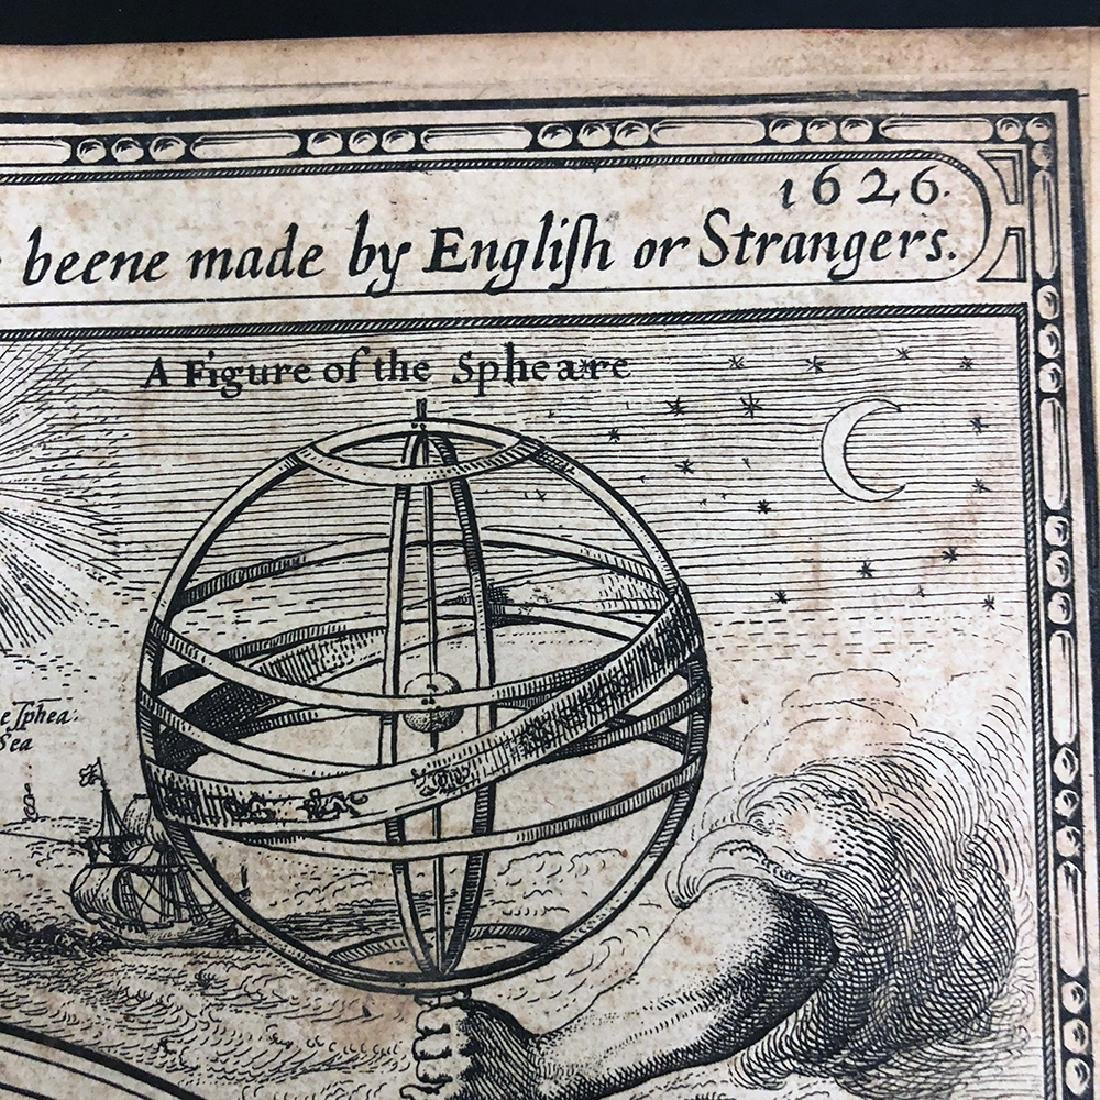 John Speed, 1627, A Prospect Most Famous Parts of World - 2